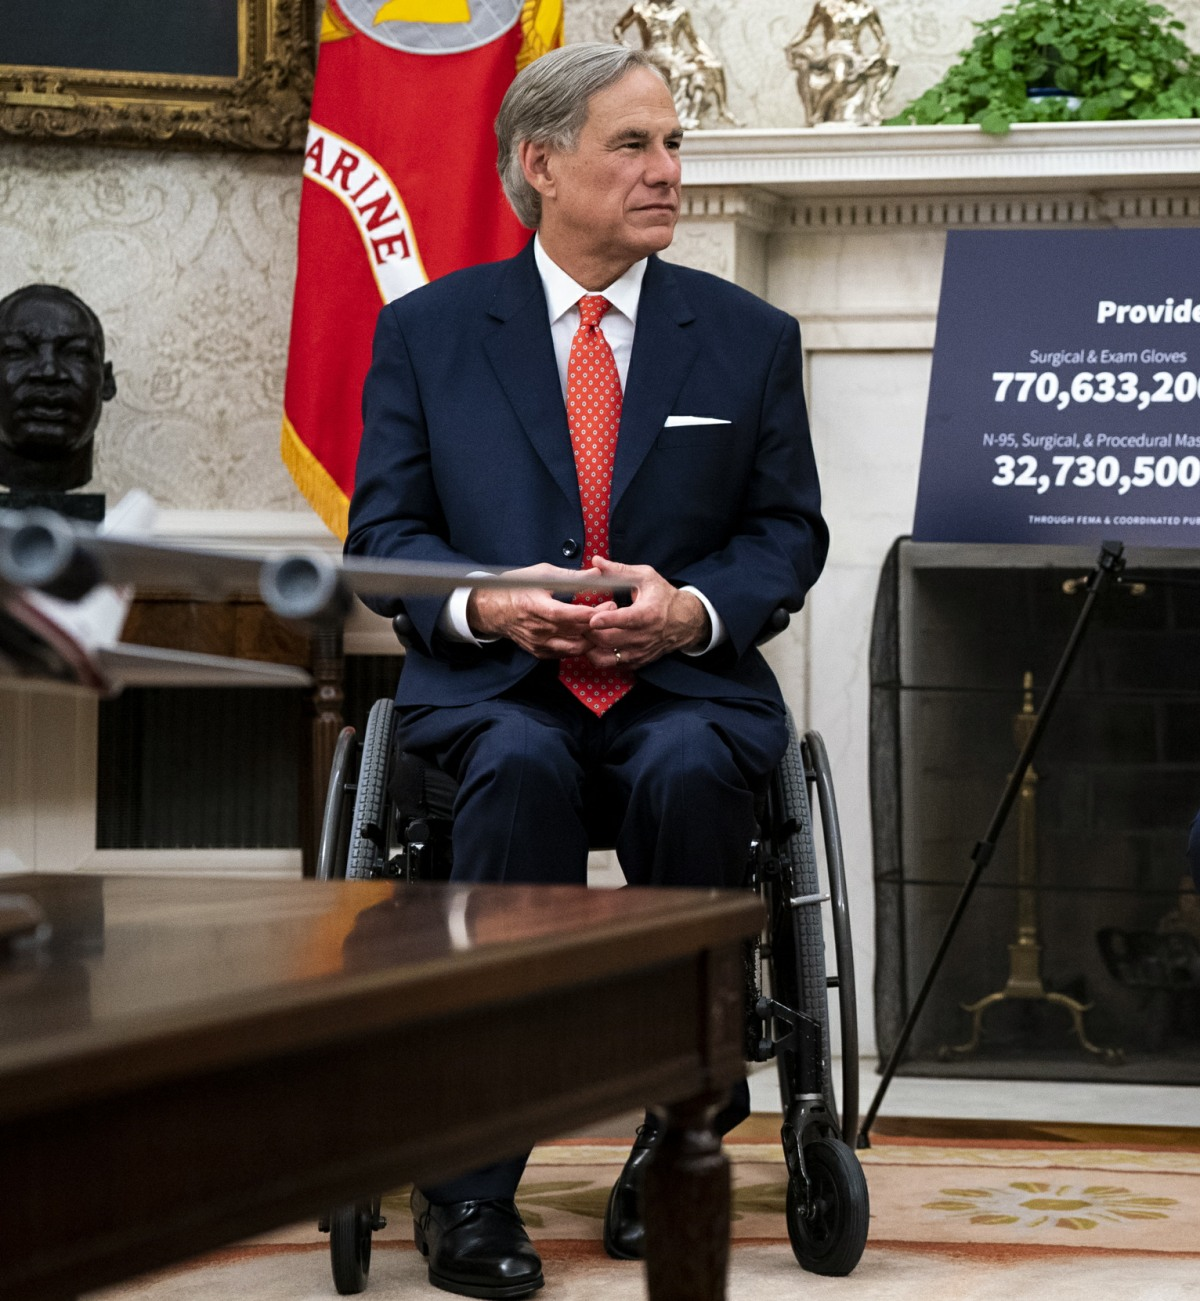 Trump Meets with Governor Greg Abbott of Texas